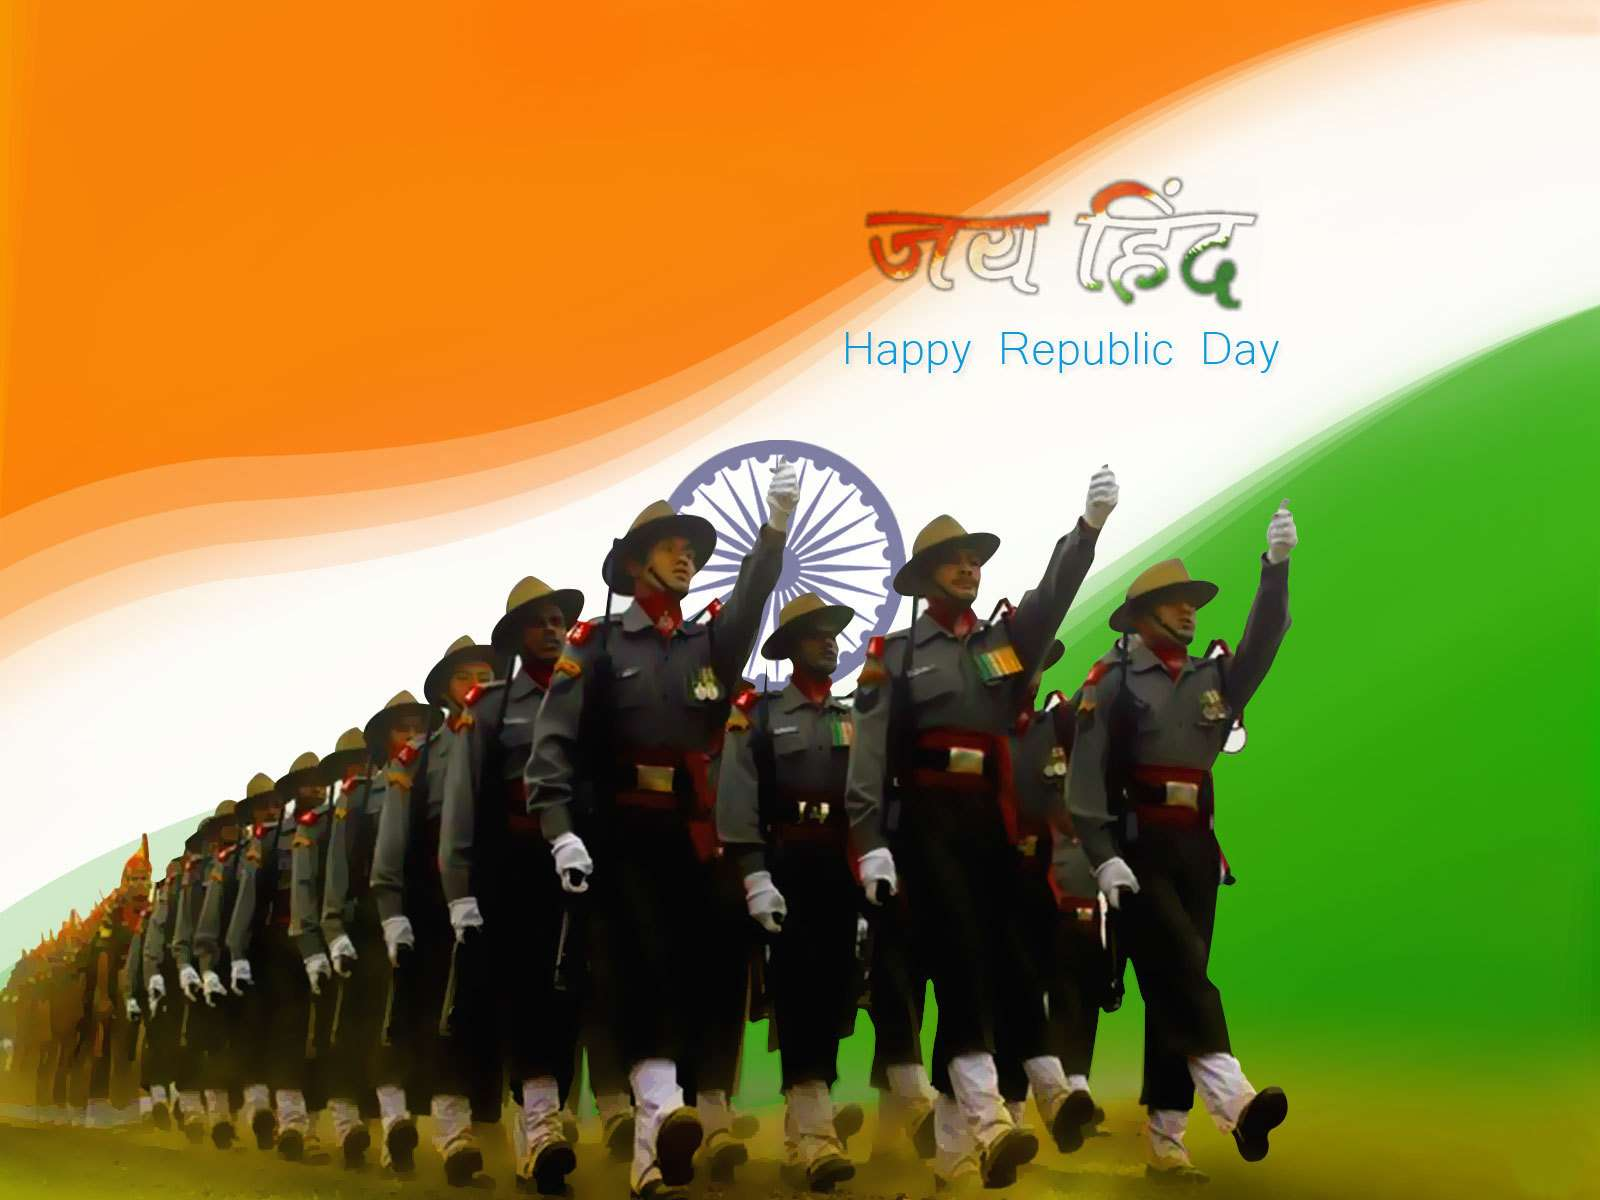 Indian Army Wish Happy Independence Day Hd Wallpaper Hd Wallpapers 1600x1200